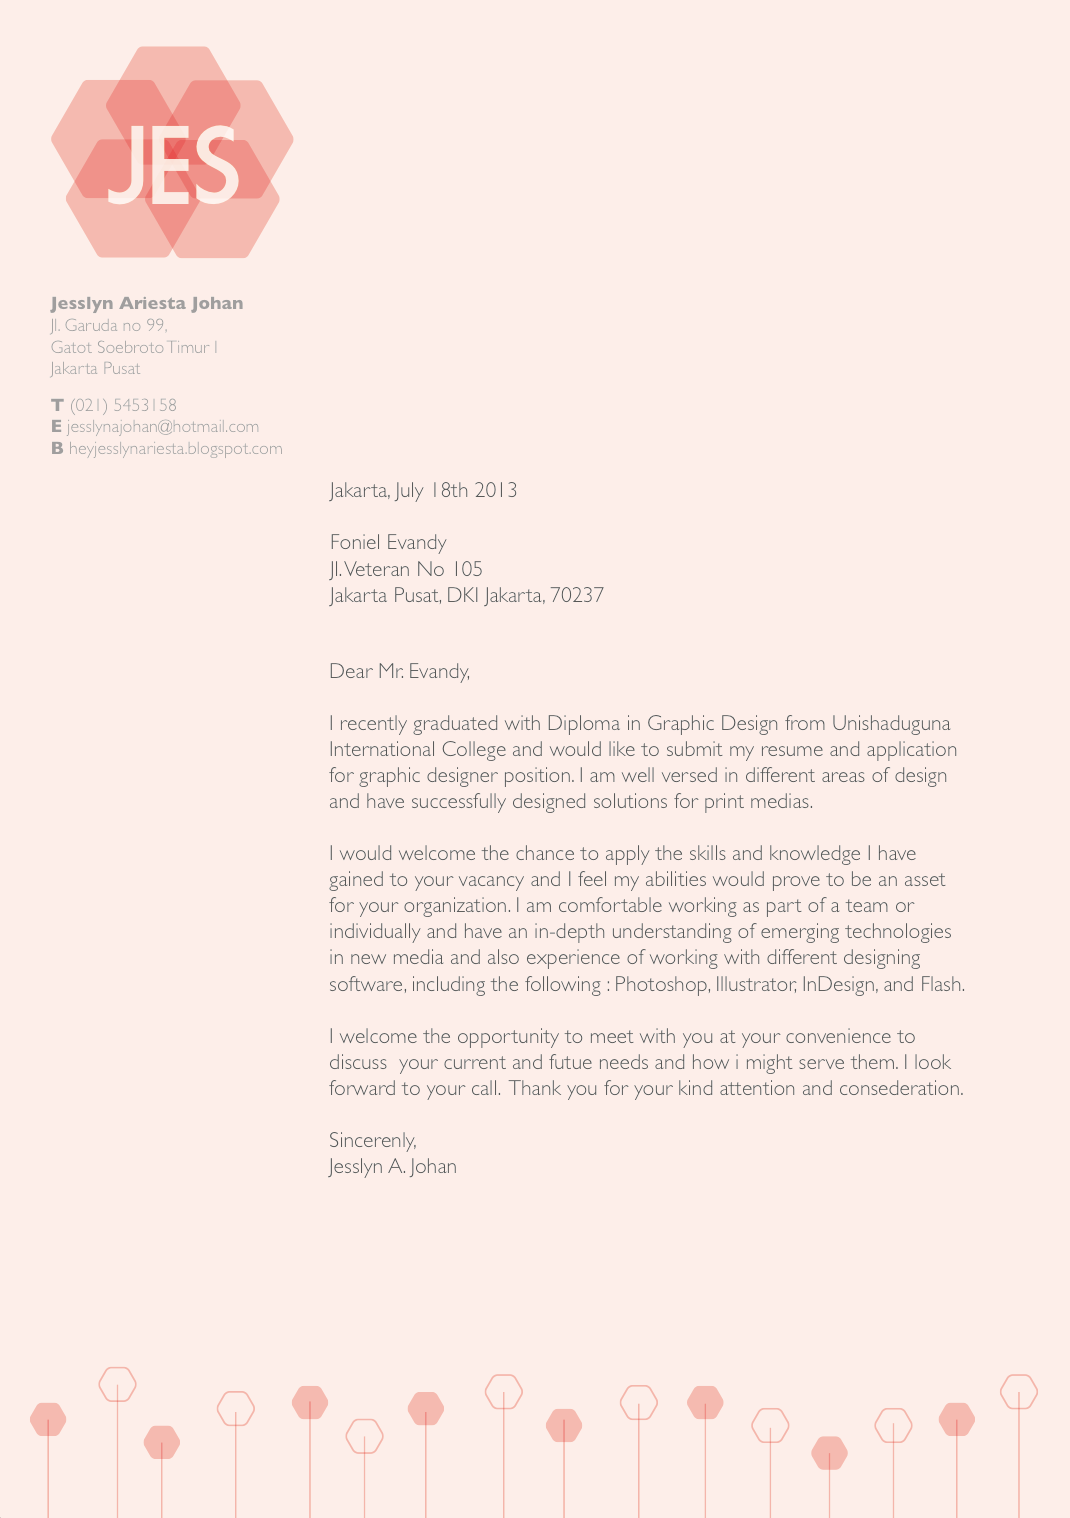 Graphic designer resume cover letter examples for Cover letters for graphic design jobs